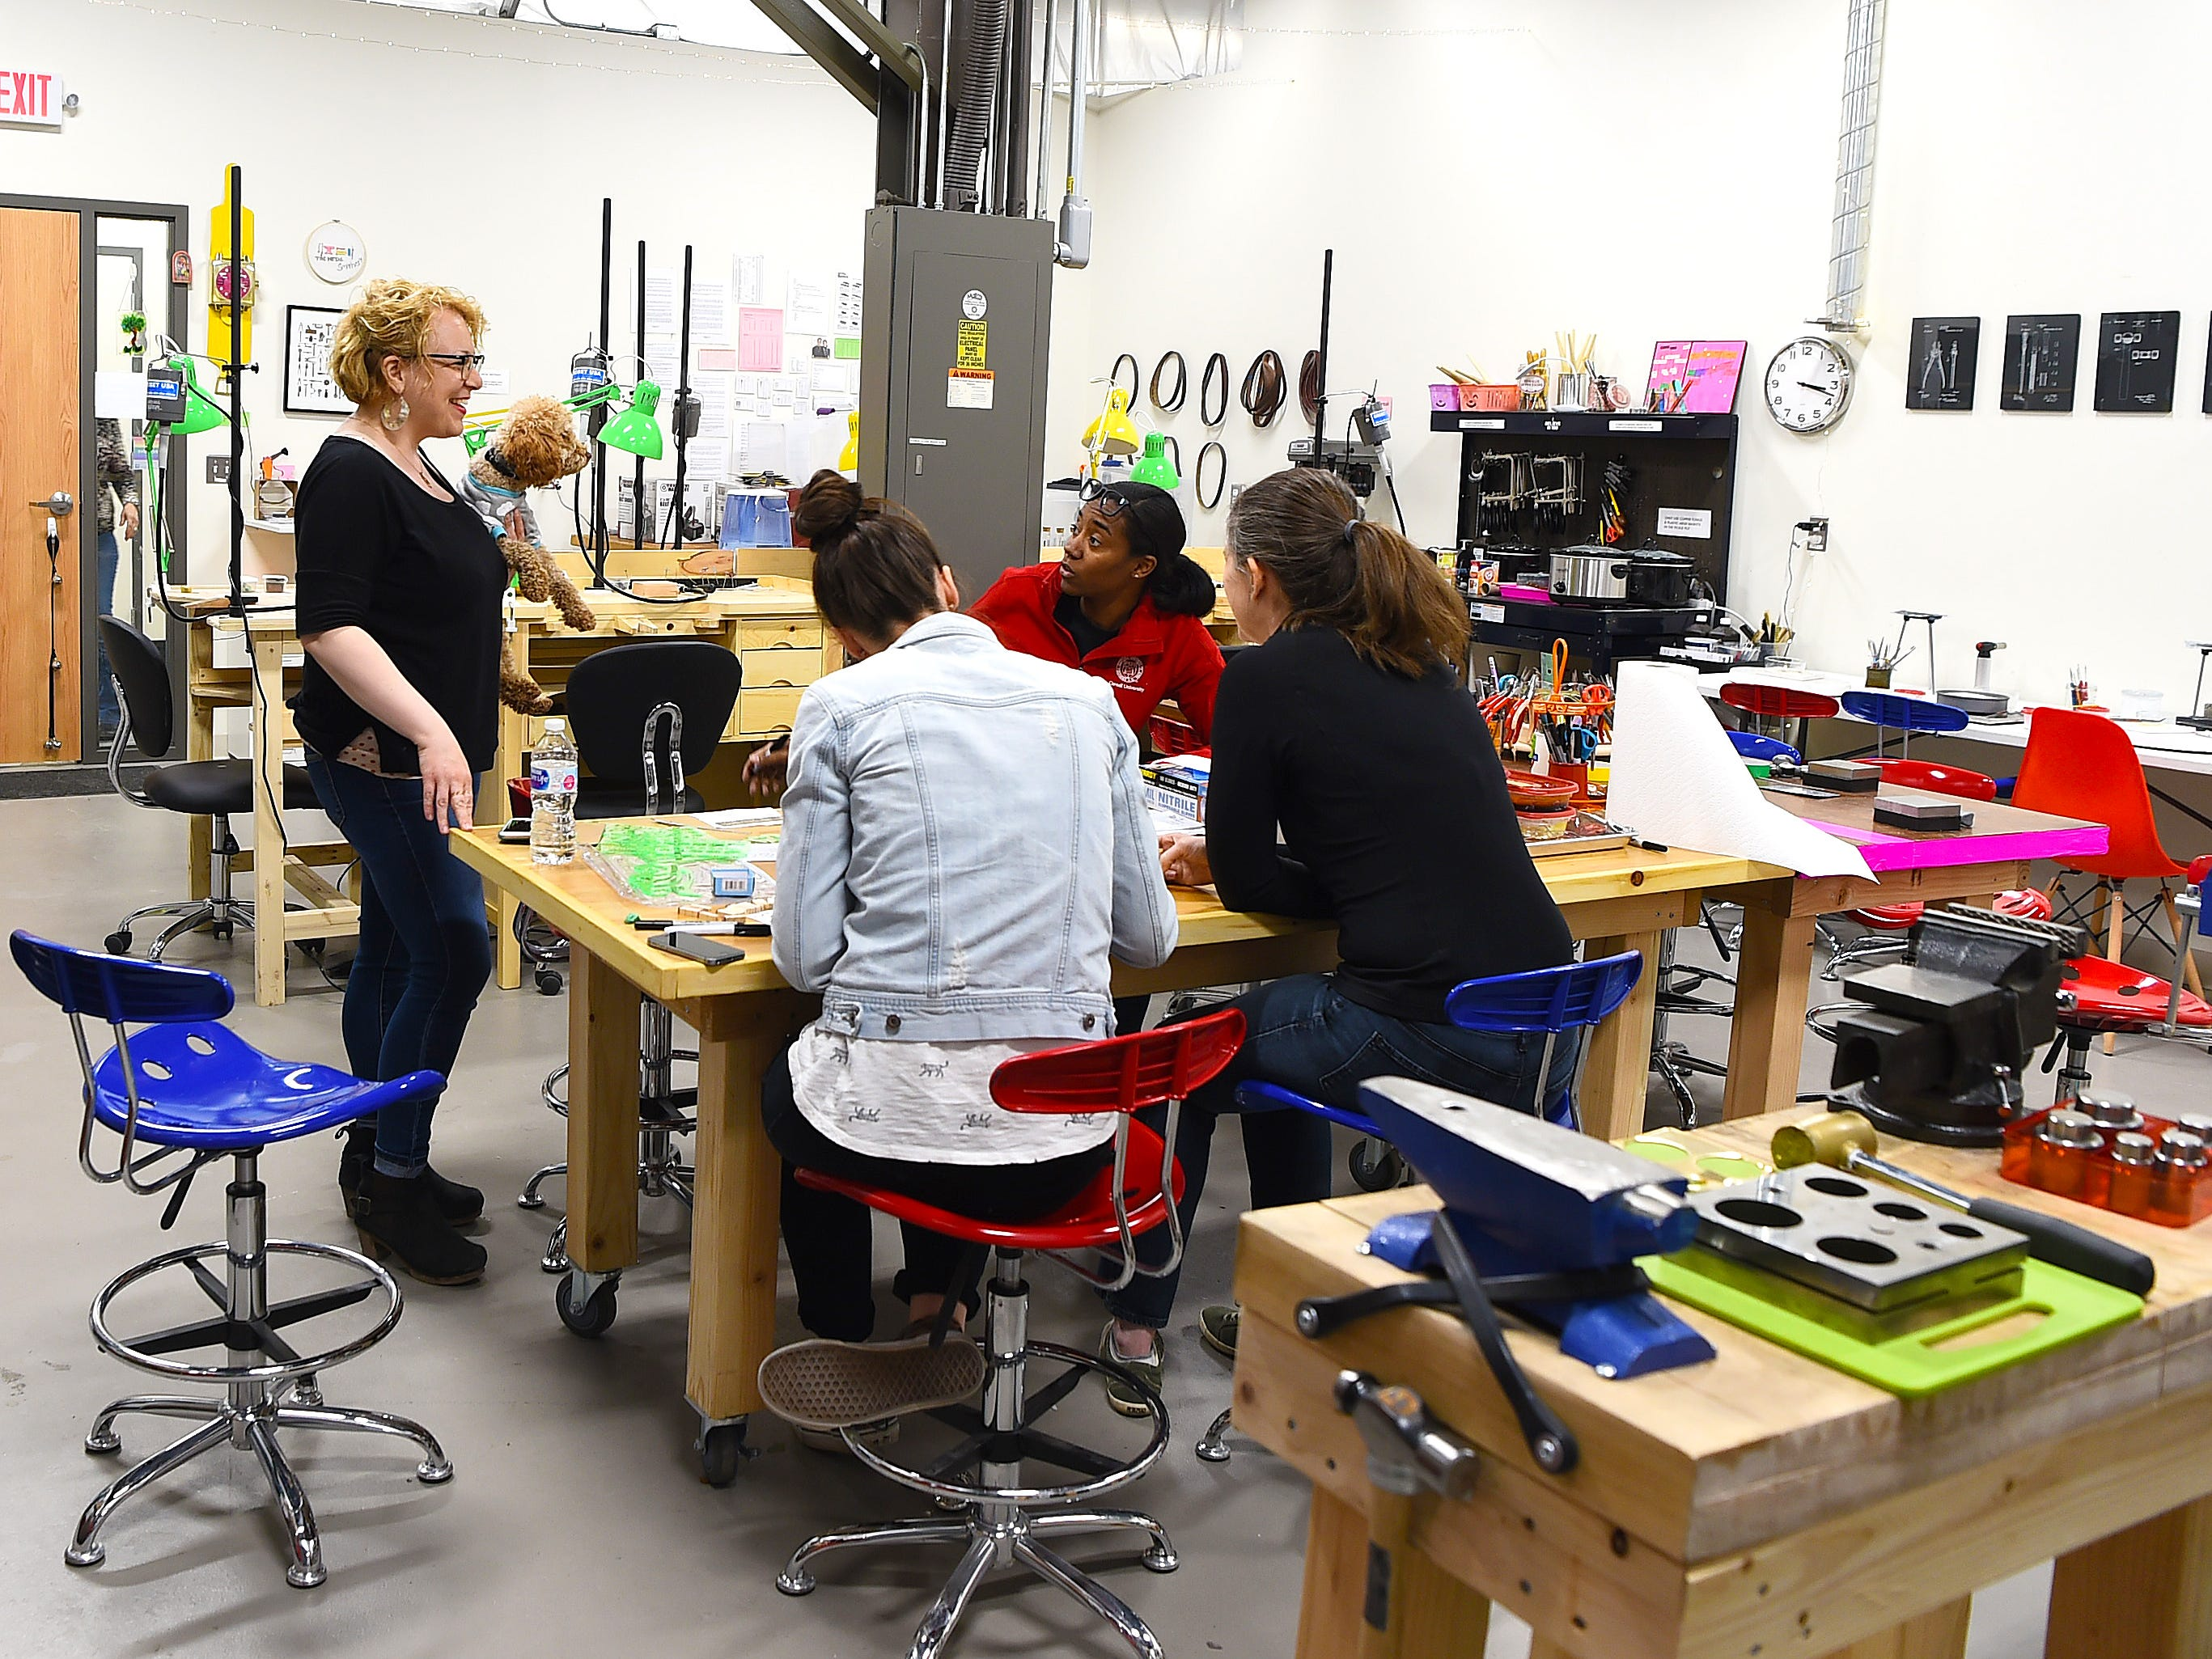 Elaan Greenfield talks with students at The Metal Smithery in the South Hill Business Campus on Danby Road. Once an industrial space, Artist Alley at South Hill now houses a variety of working art studios and businesses.